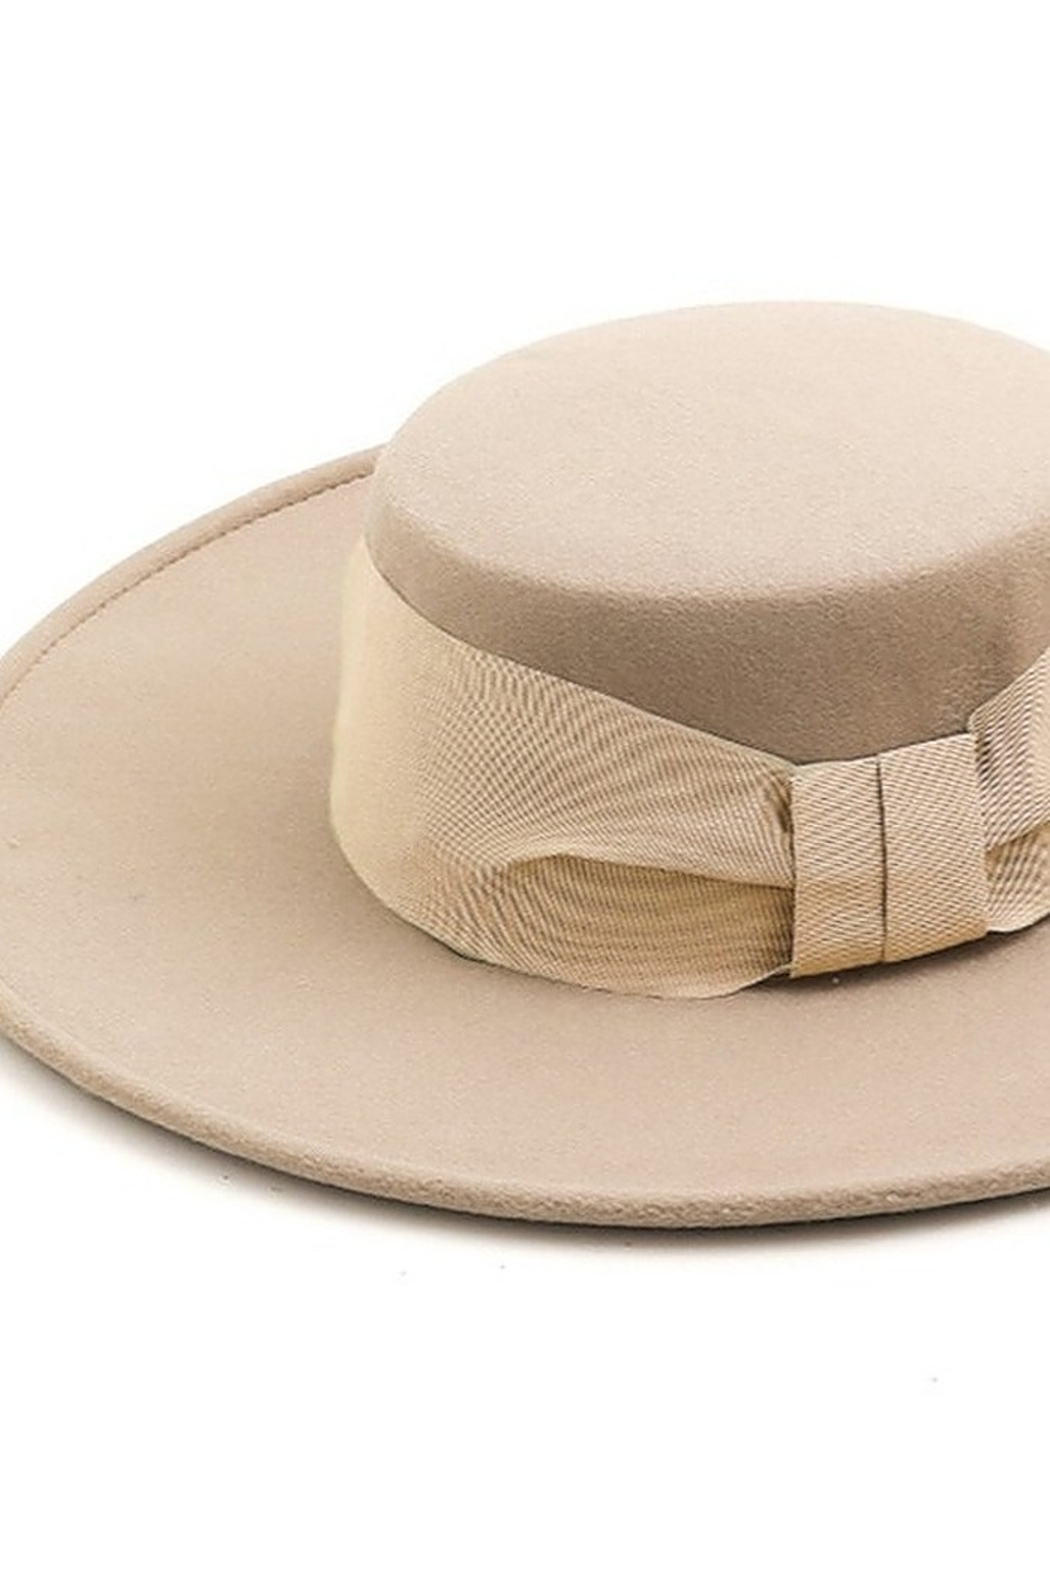 Fame Accessories Flat Brim Fedora - Front Full Image